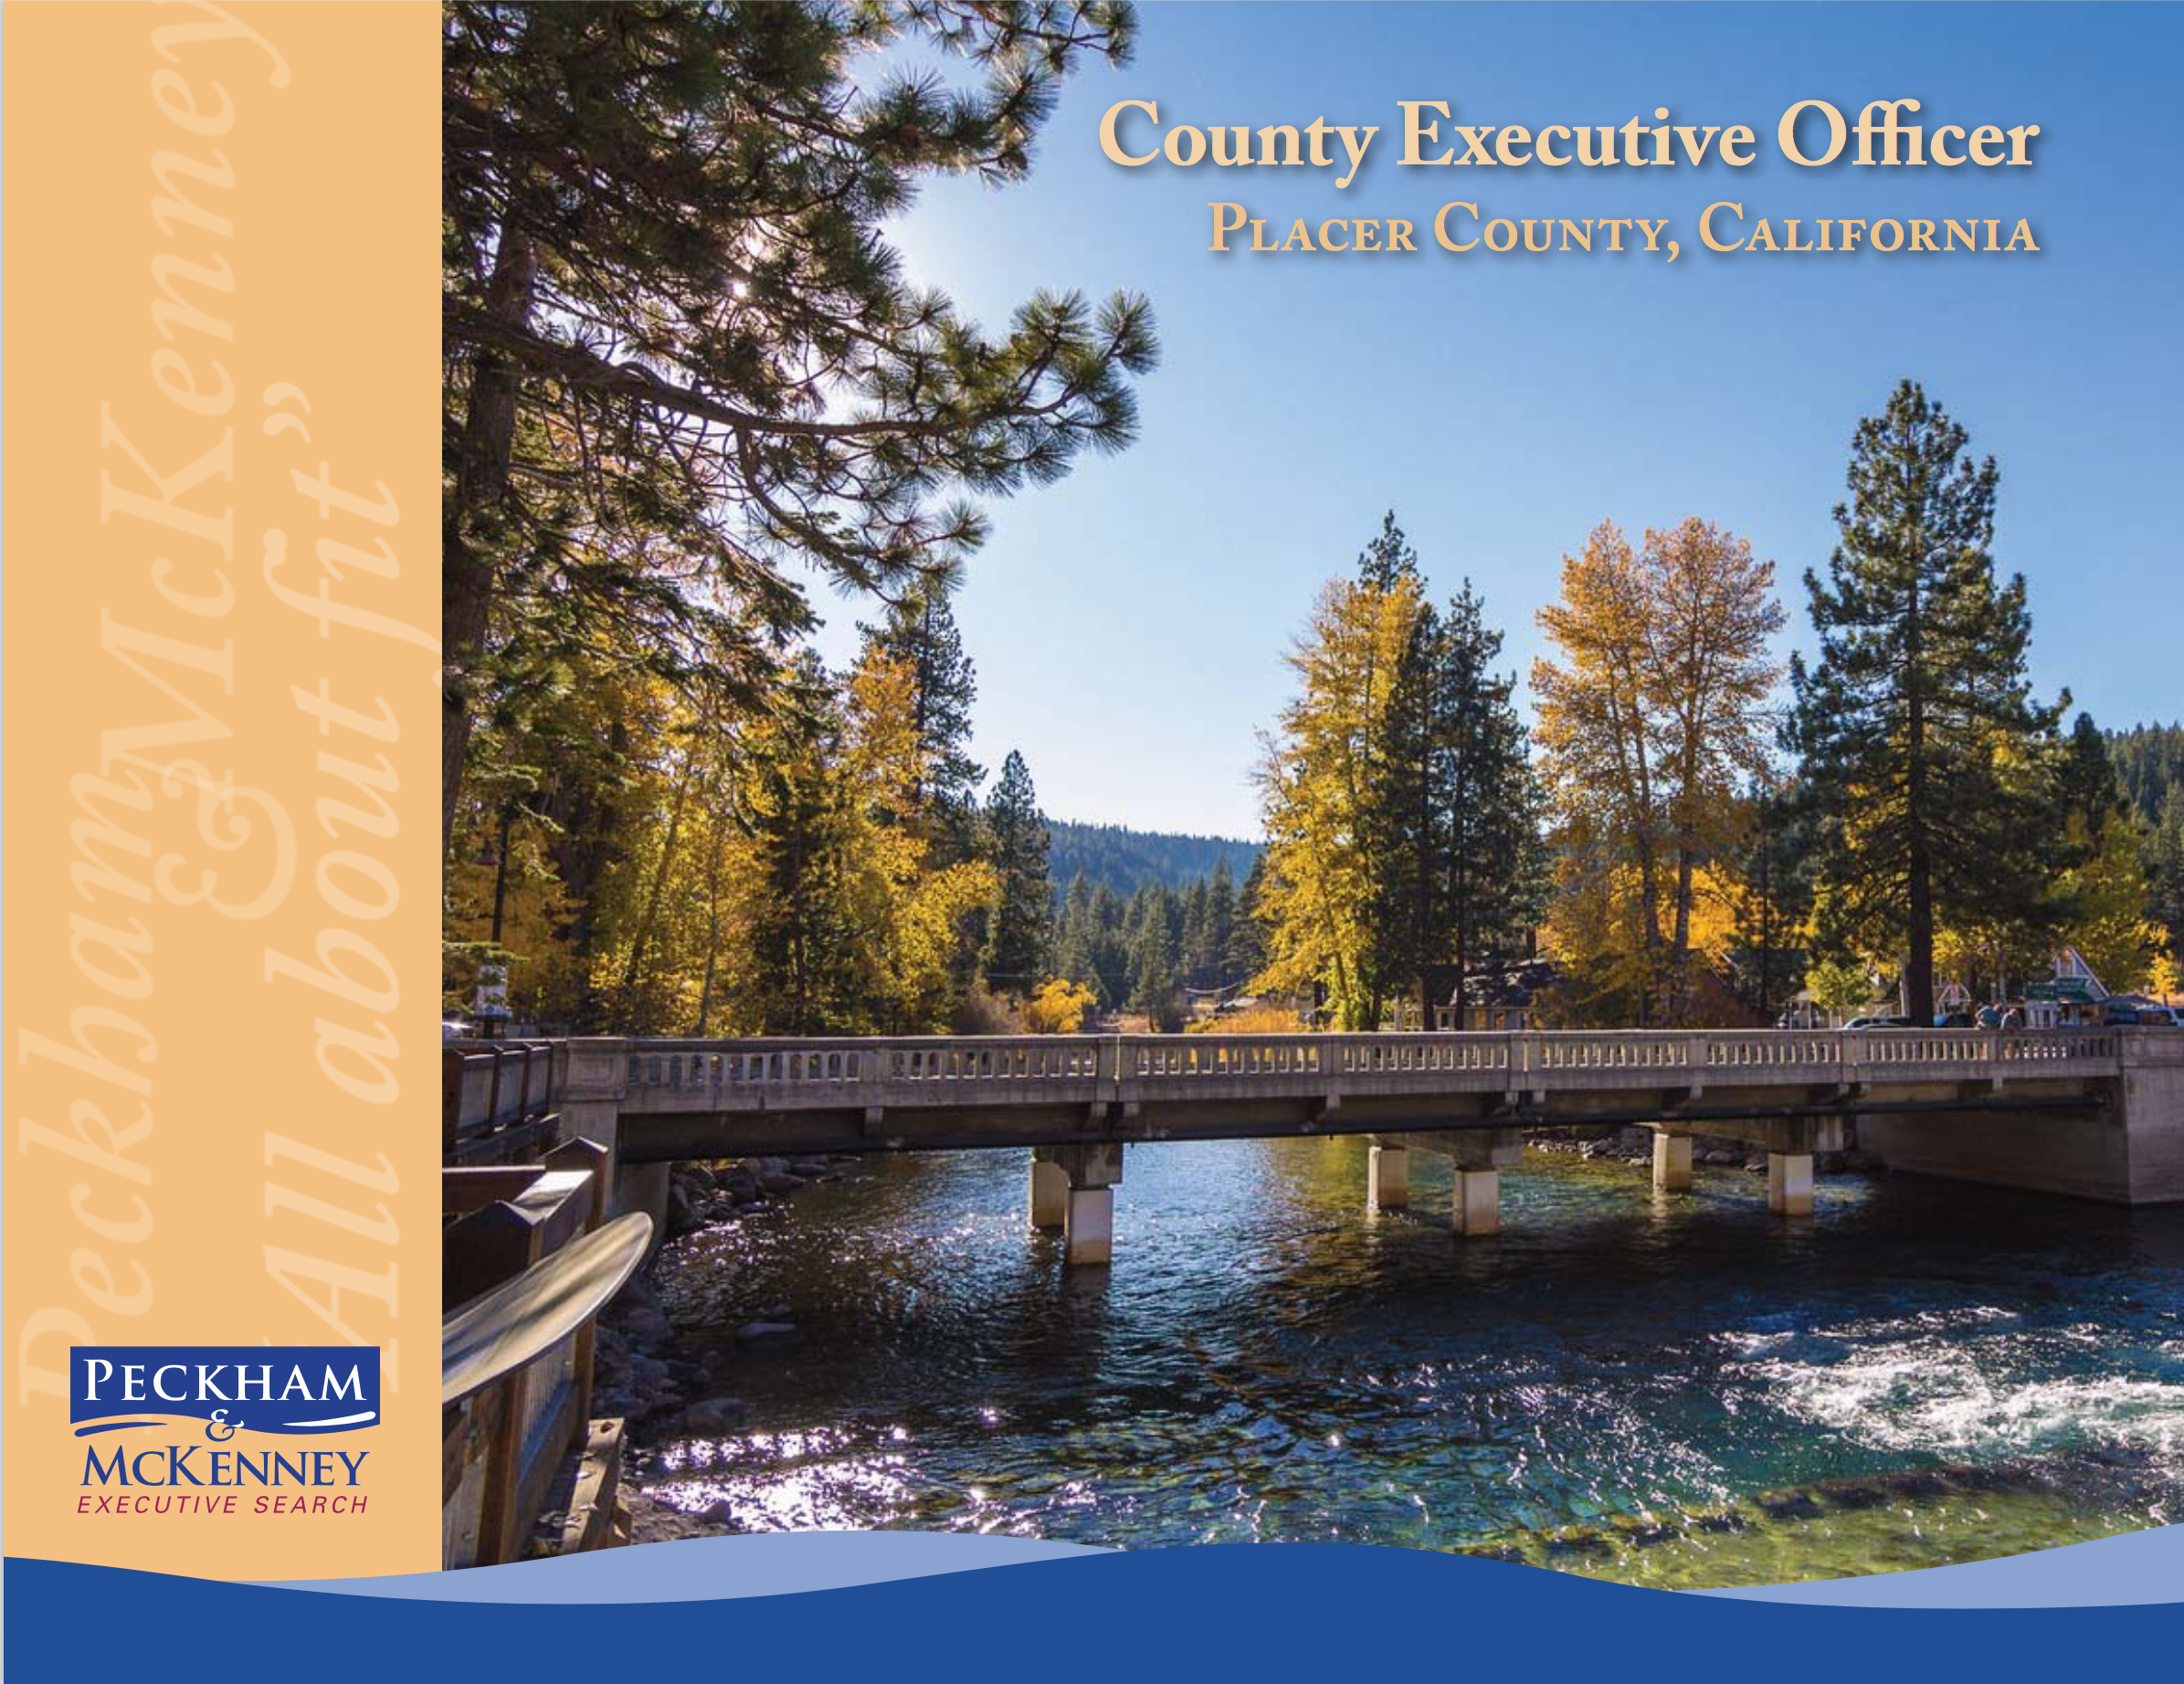 Peckham-McKenney-Placer-County-Profile.png